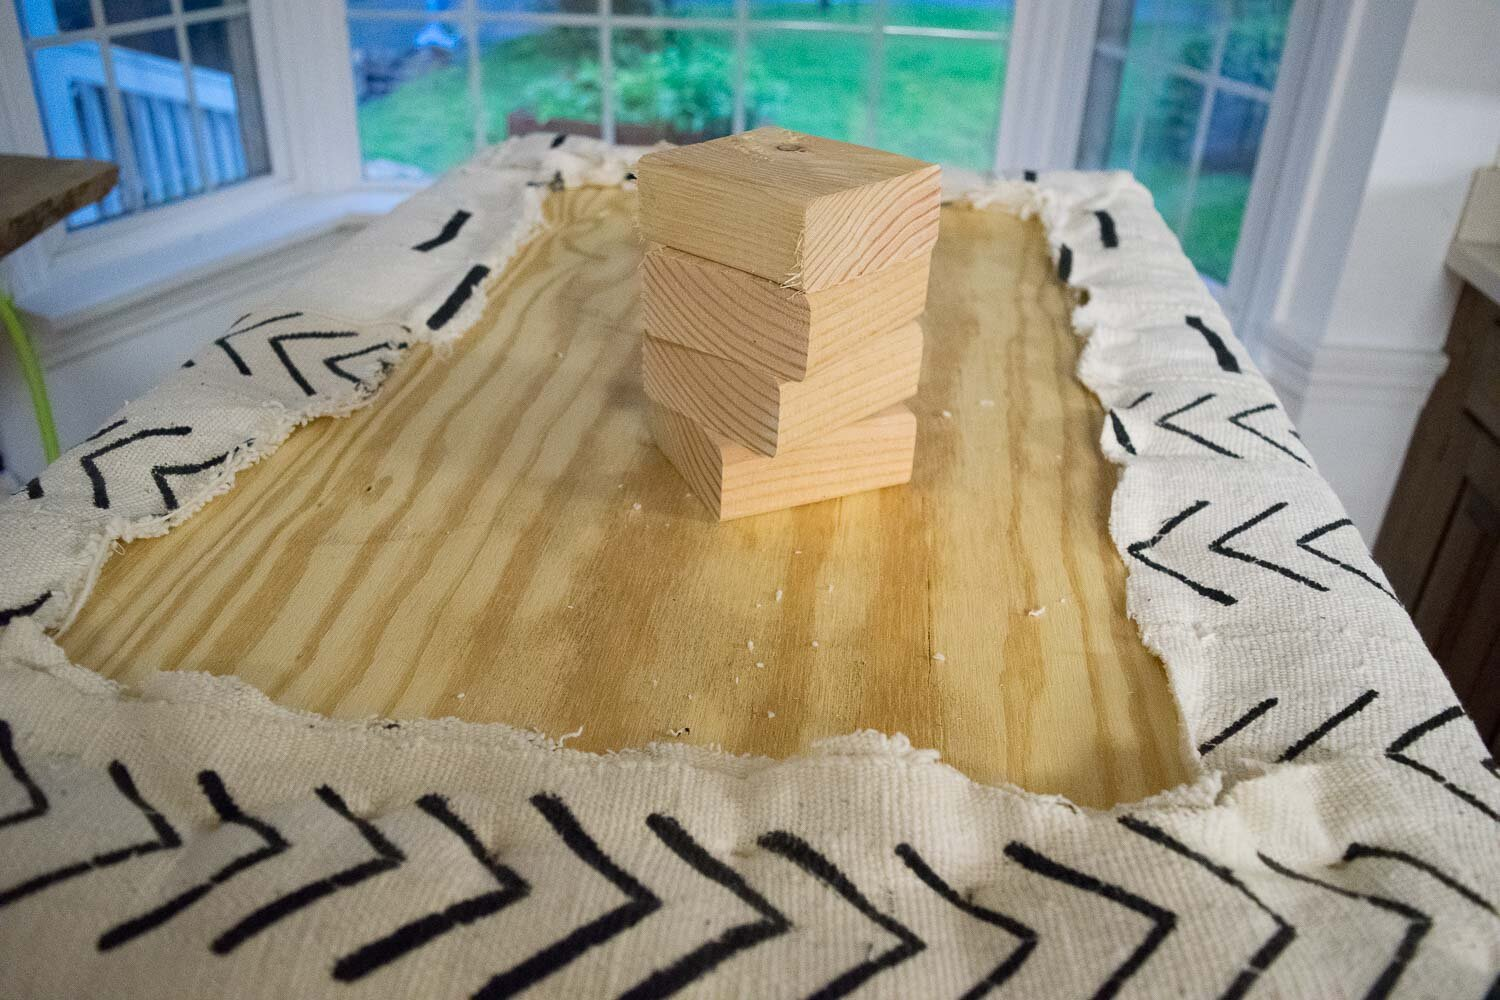 Stapling the Corners for a DIY Boho Mud Cloth Ottoman   Designed by This Giant Life